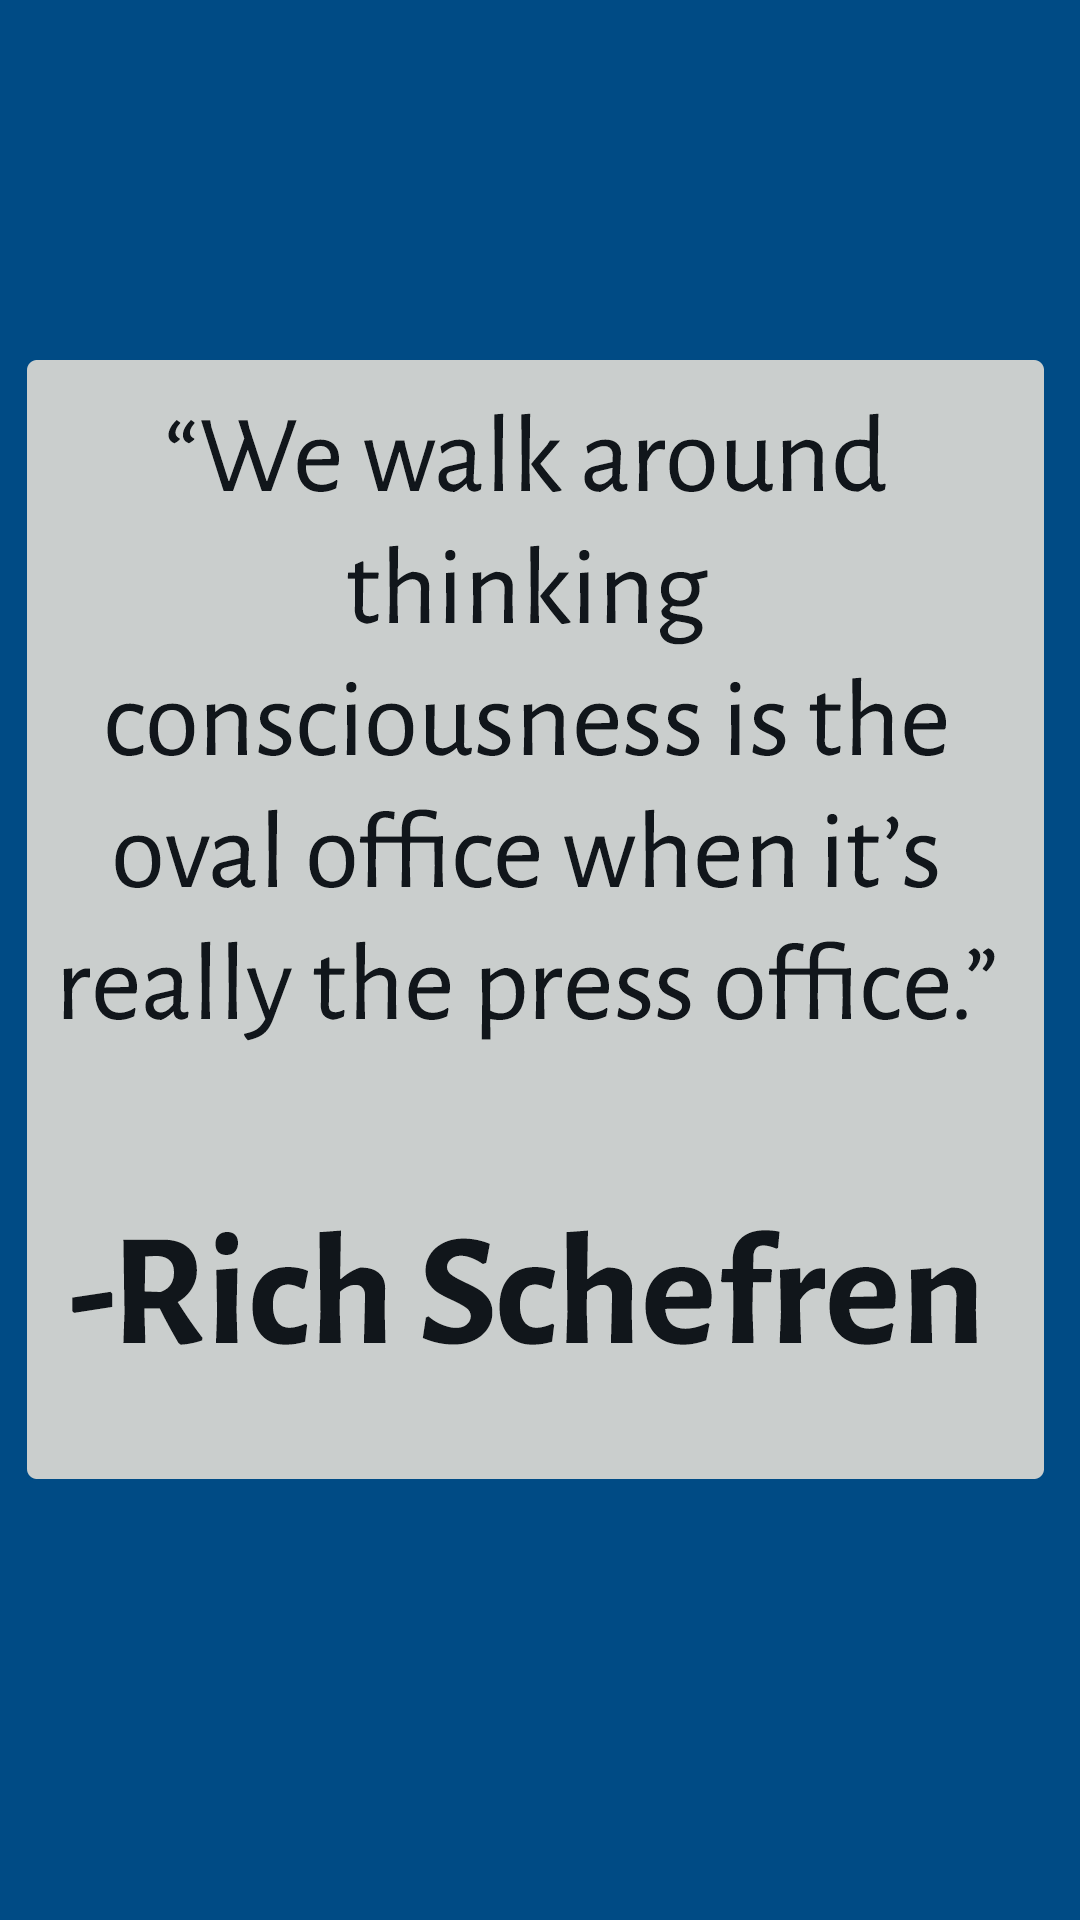 rich schefren quote